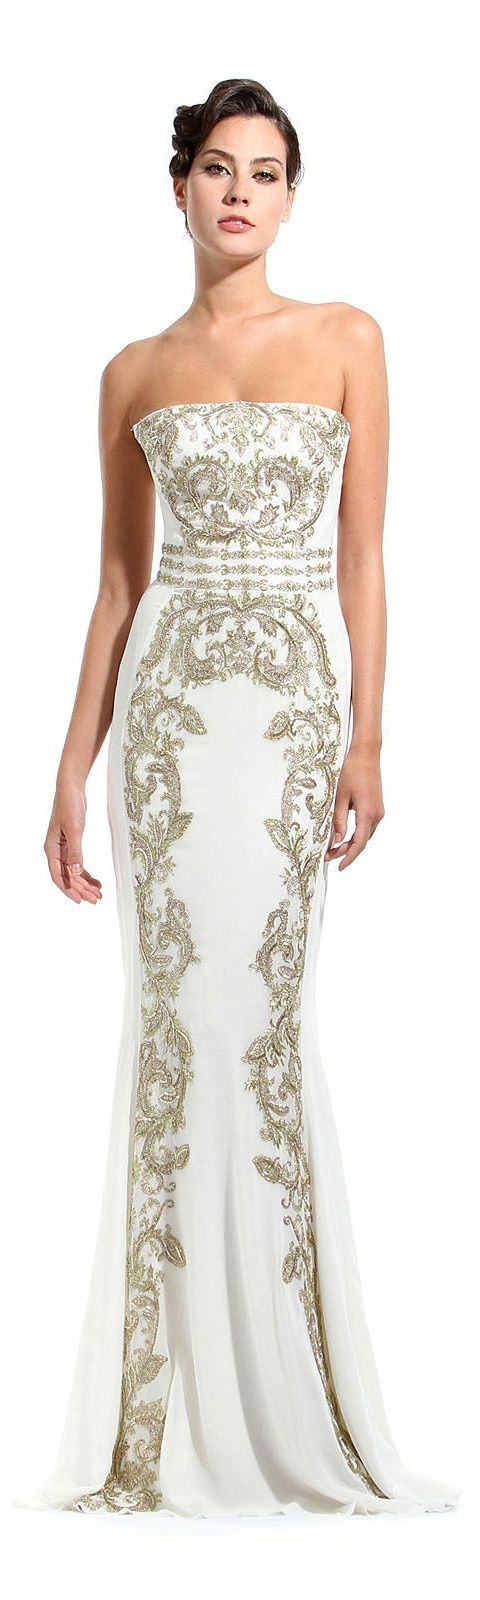 Zuhair Murad - I want to wear these dresses!...